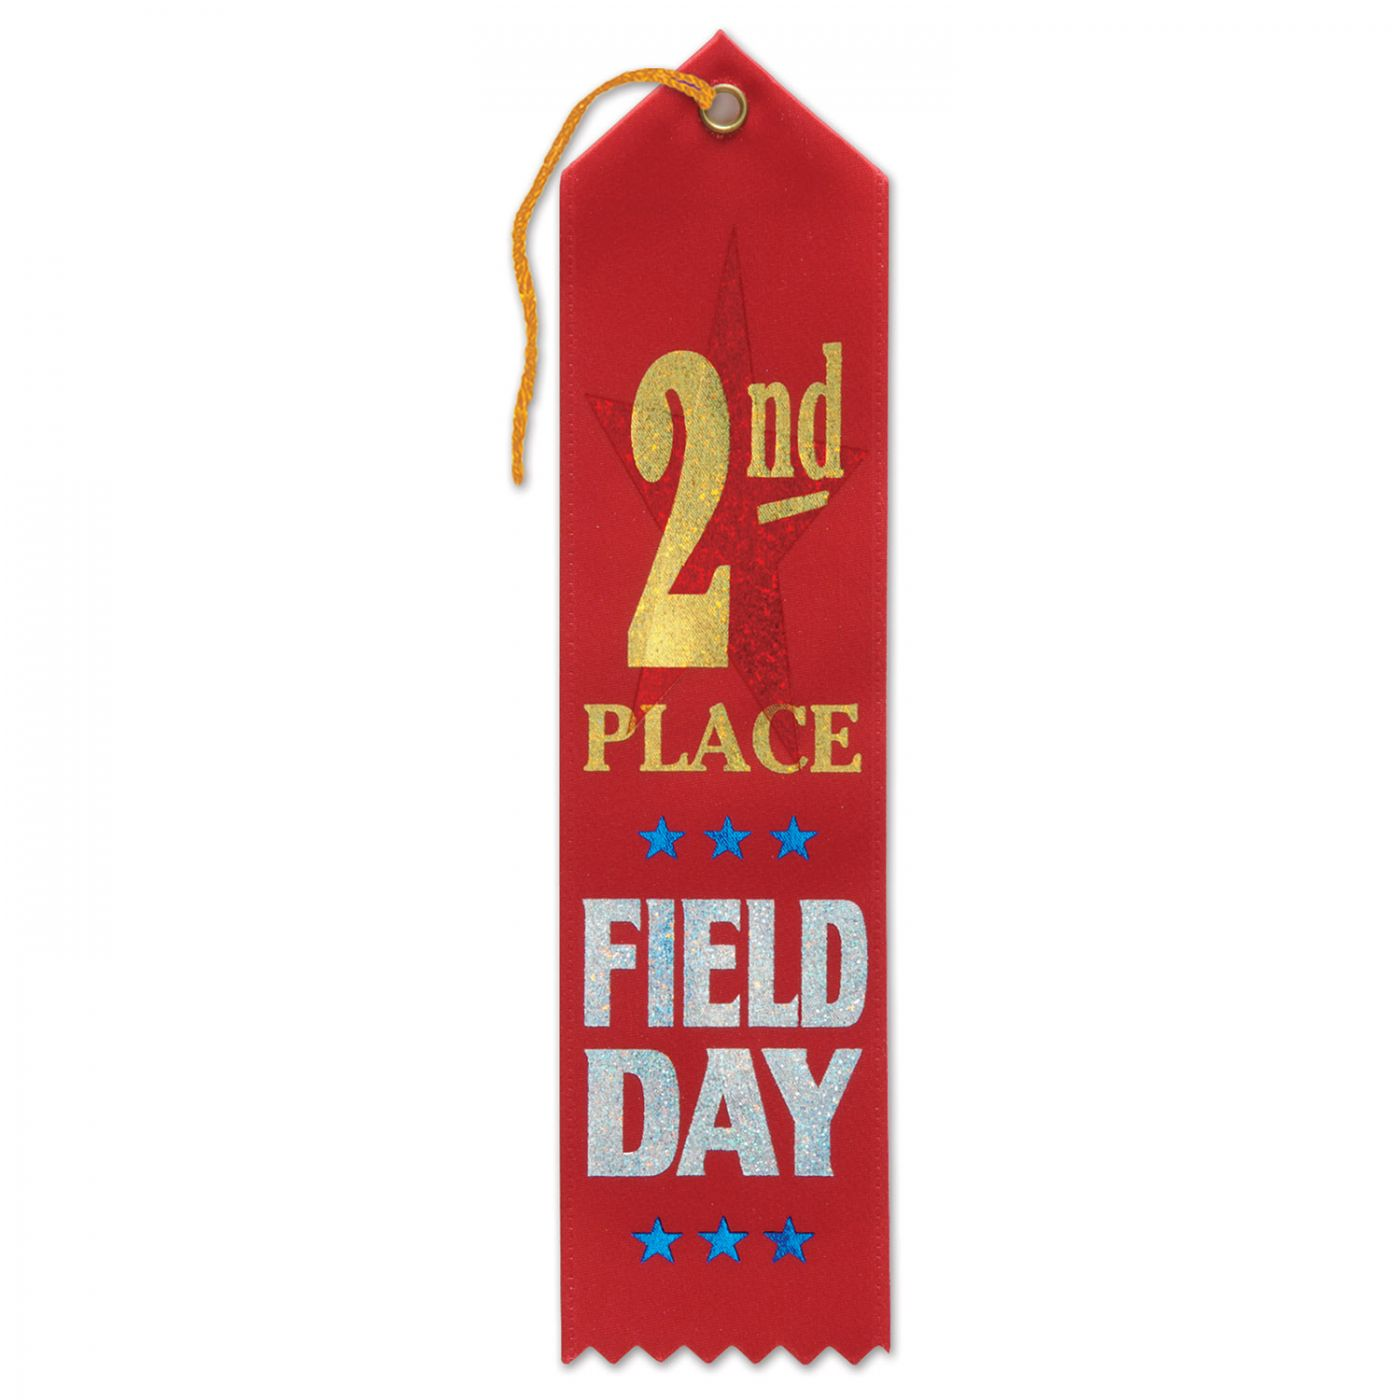 Image of 2nd Place Field Day Award Ribbon (6)